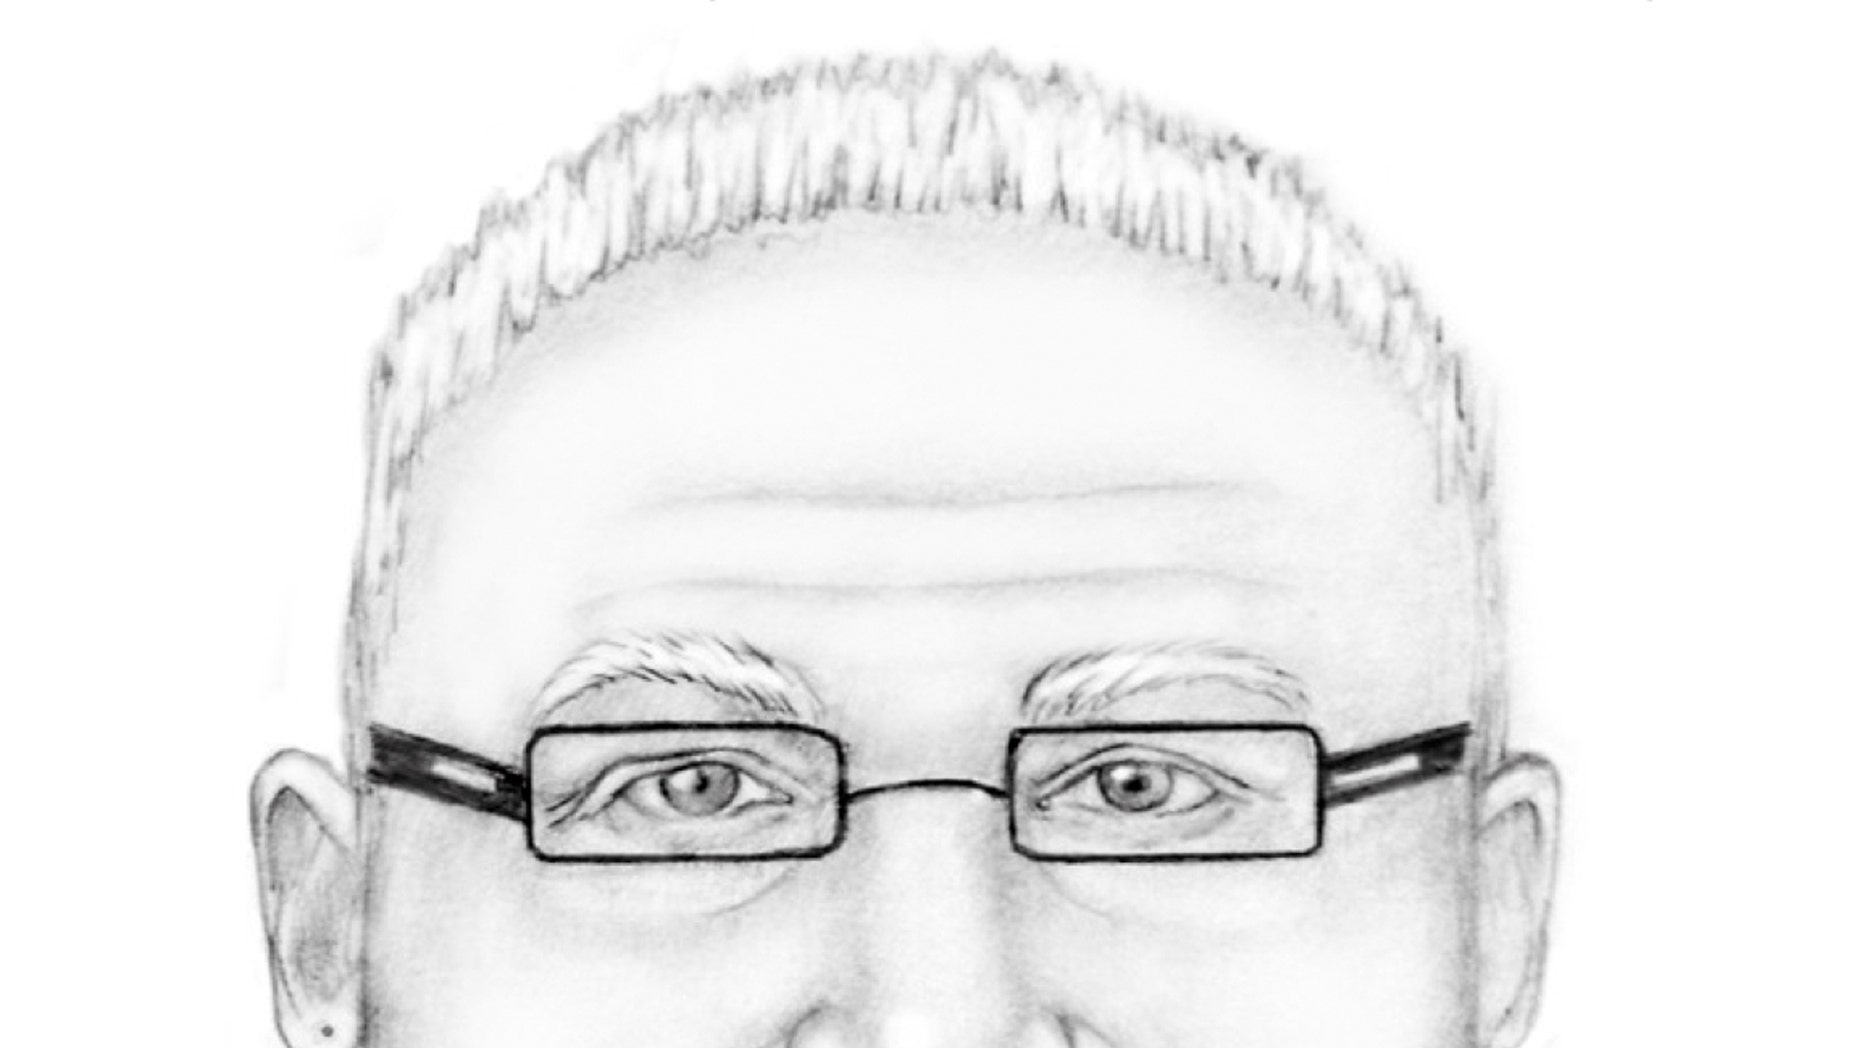 Oct. 13, 2012 - FBI image shows composite drawing of a man suspected of kidnapping a girl in Wyoming.